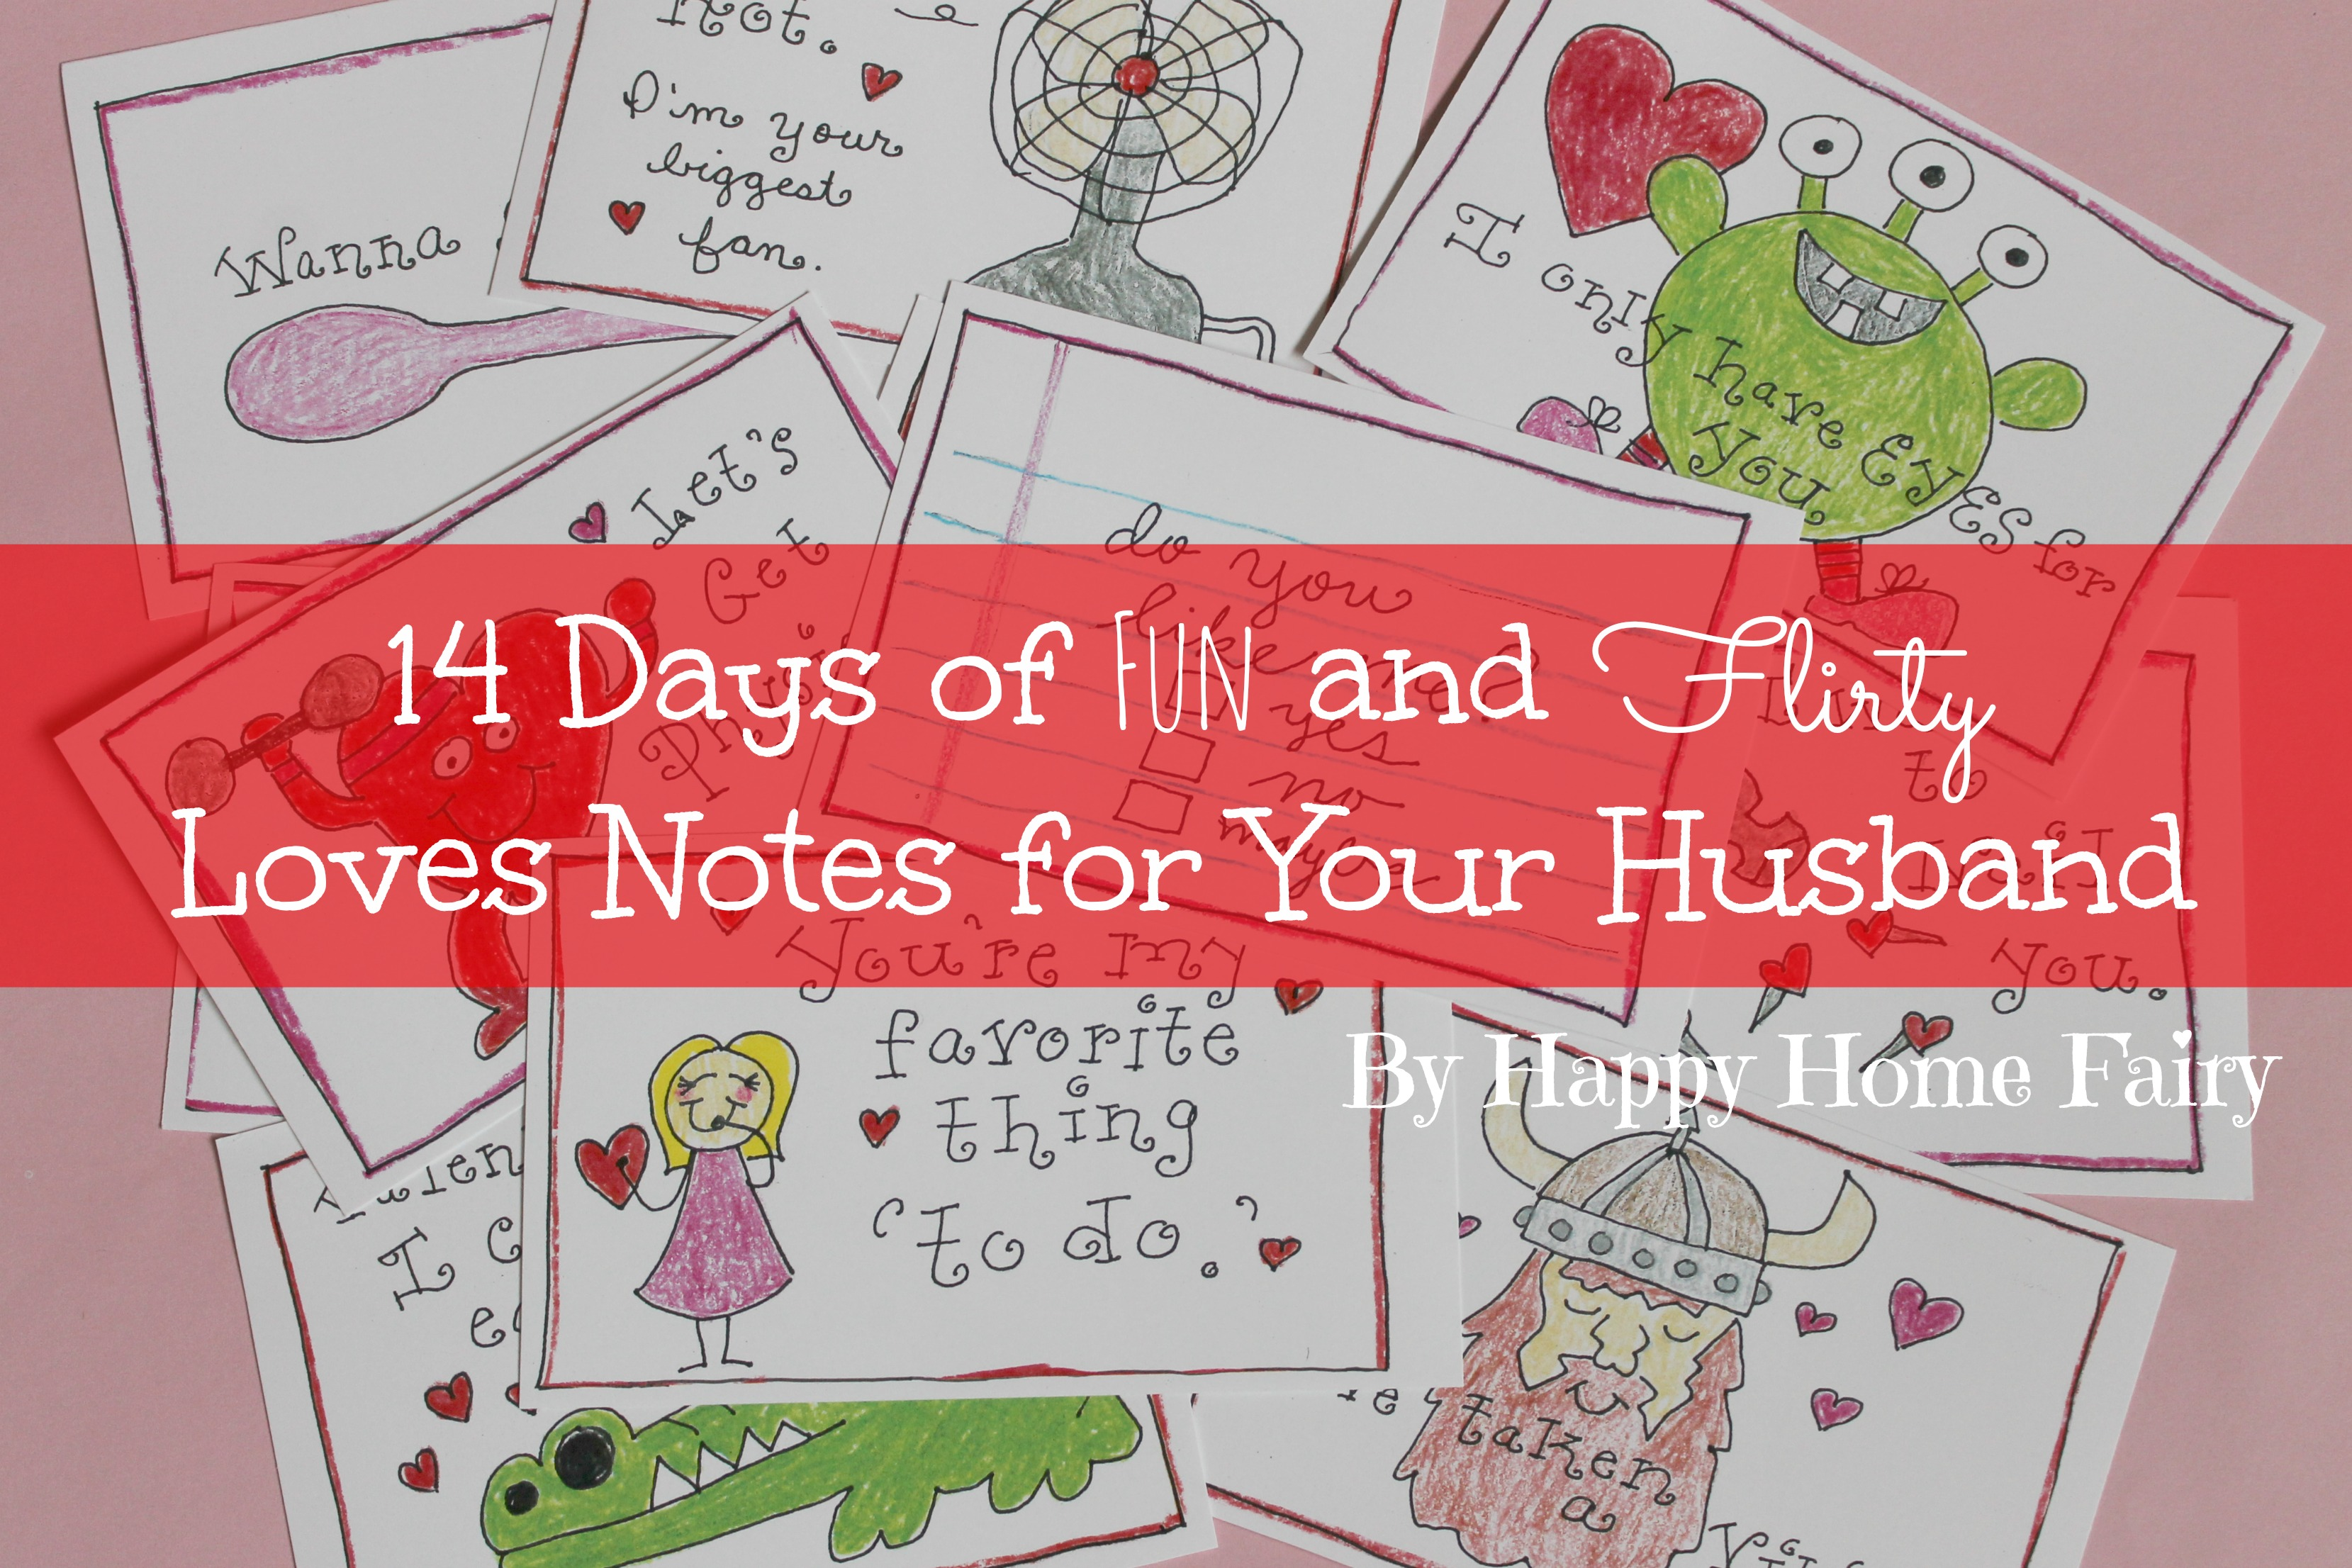 image regarding Free Printable Valentine Cards for Husband called 14 Times of Enjoyable and Flirty Appreciate Notes for Your Spouse - Cost-free